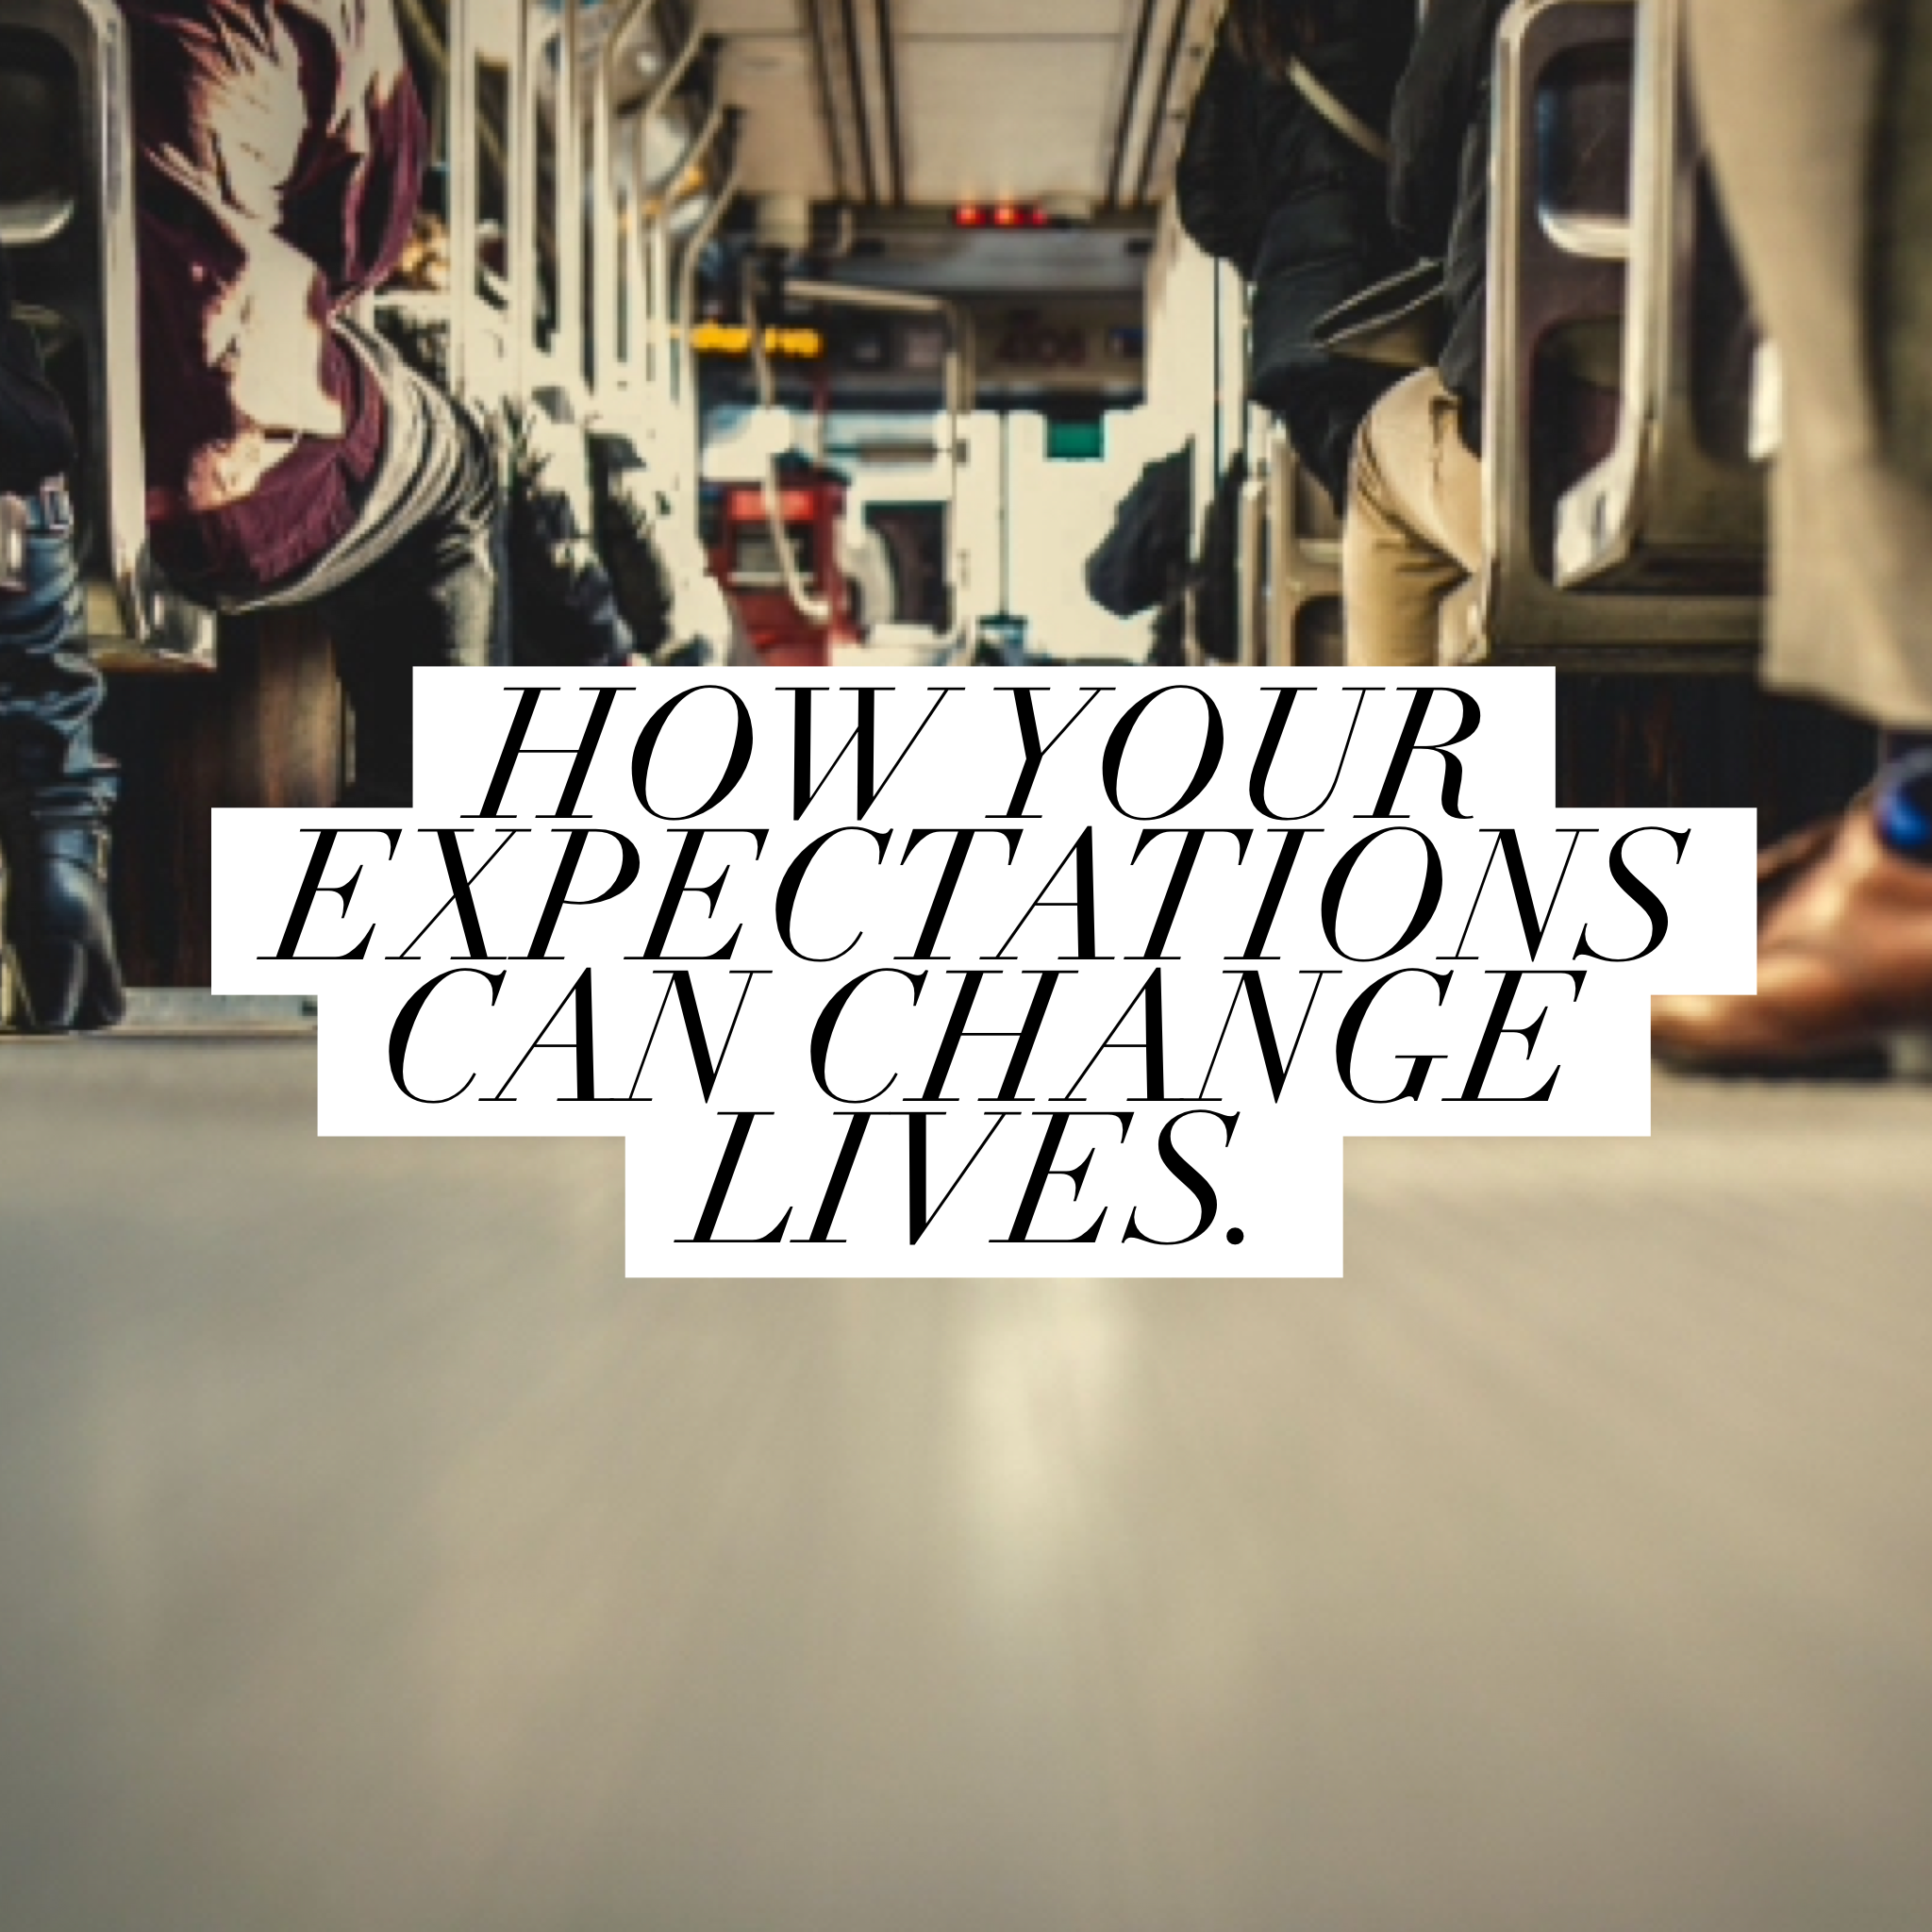 how your expectations can change lives